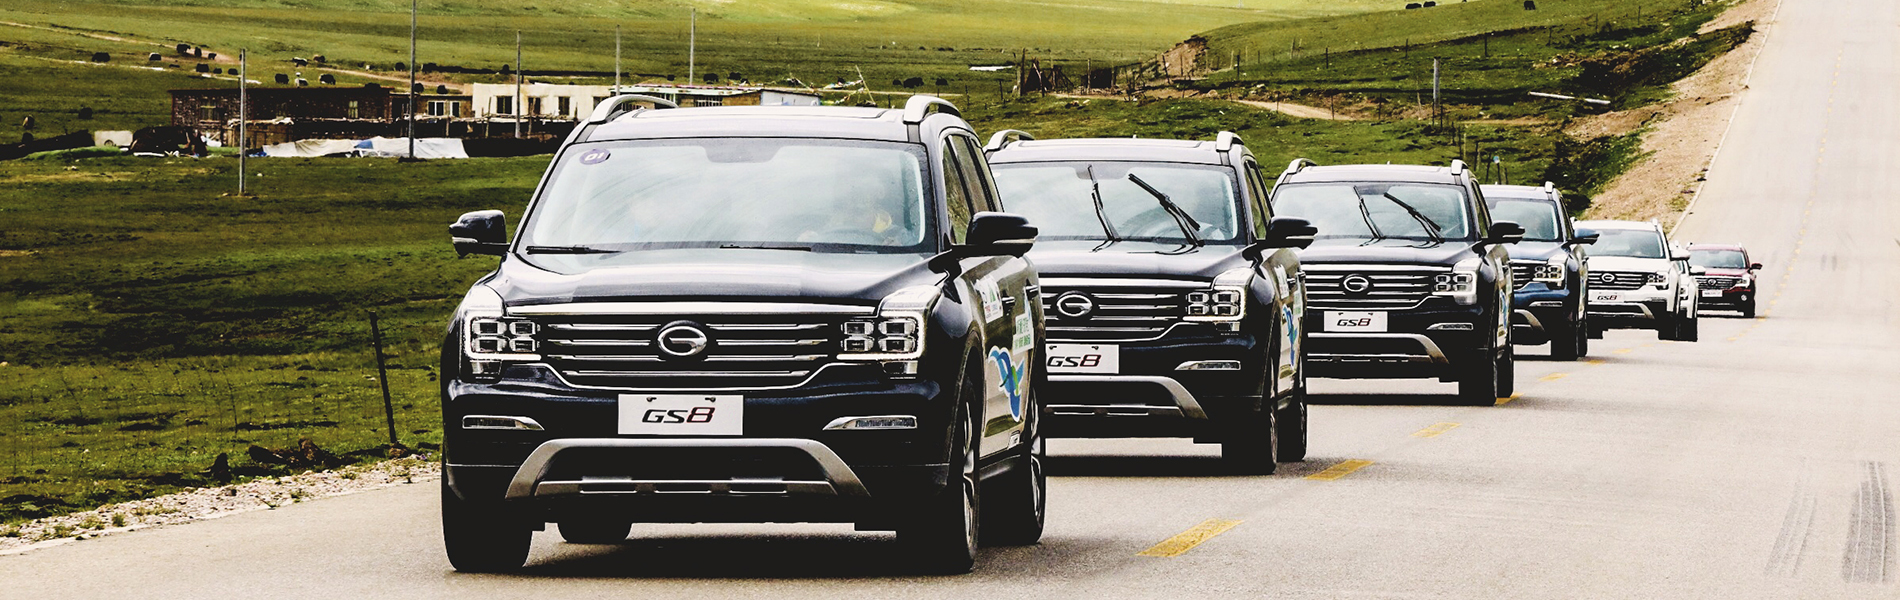 Banner image of SUVs driving down the road